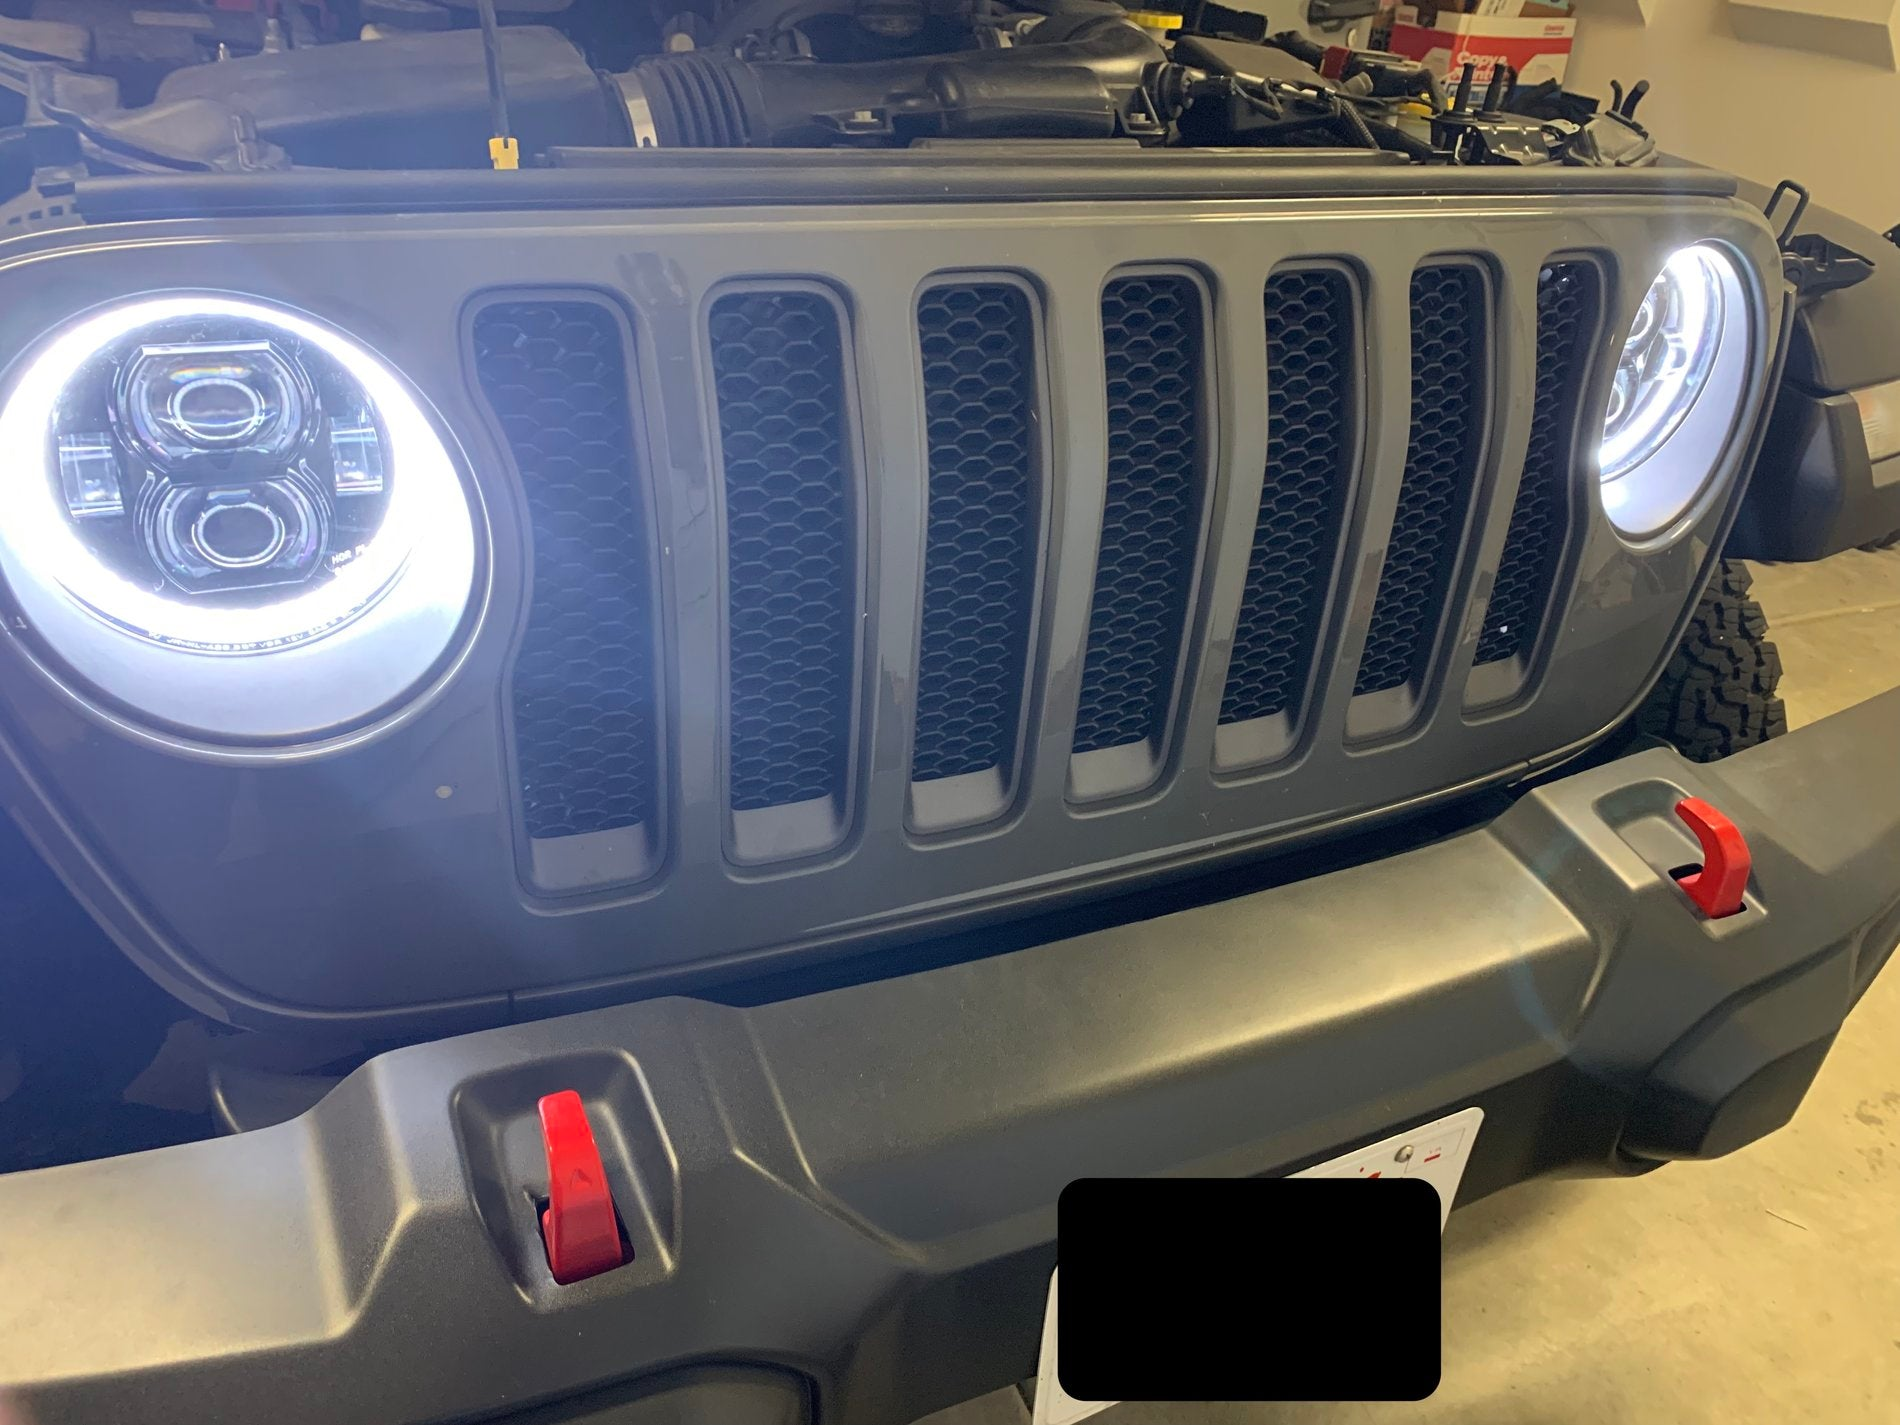 Kiwi halo lights installed